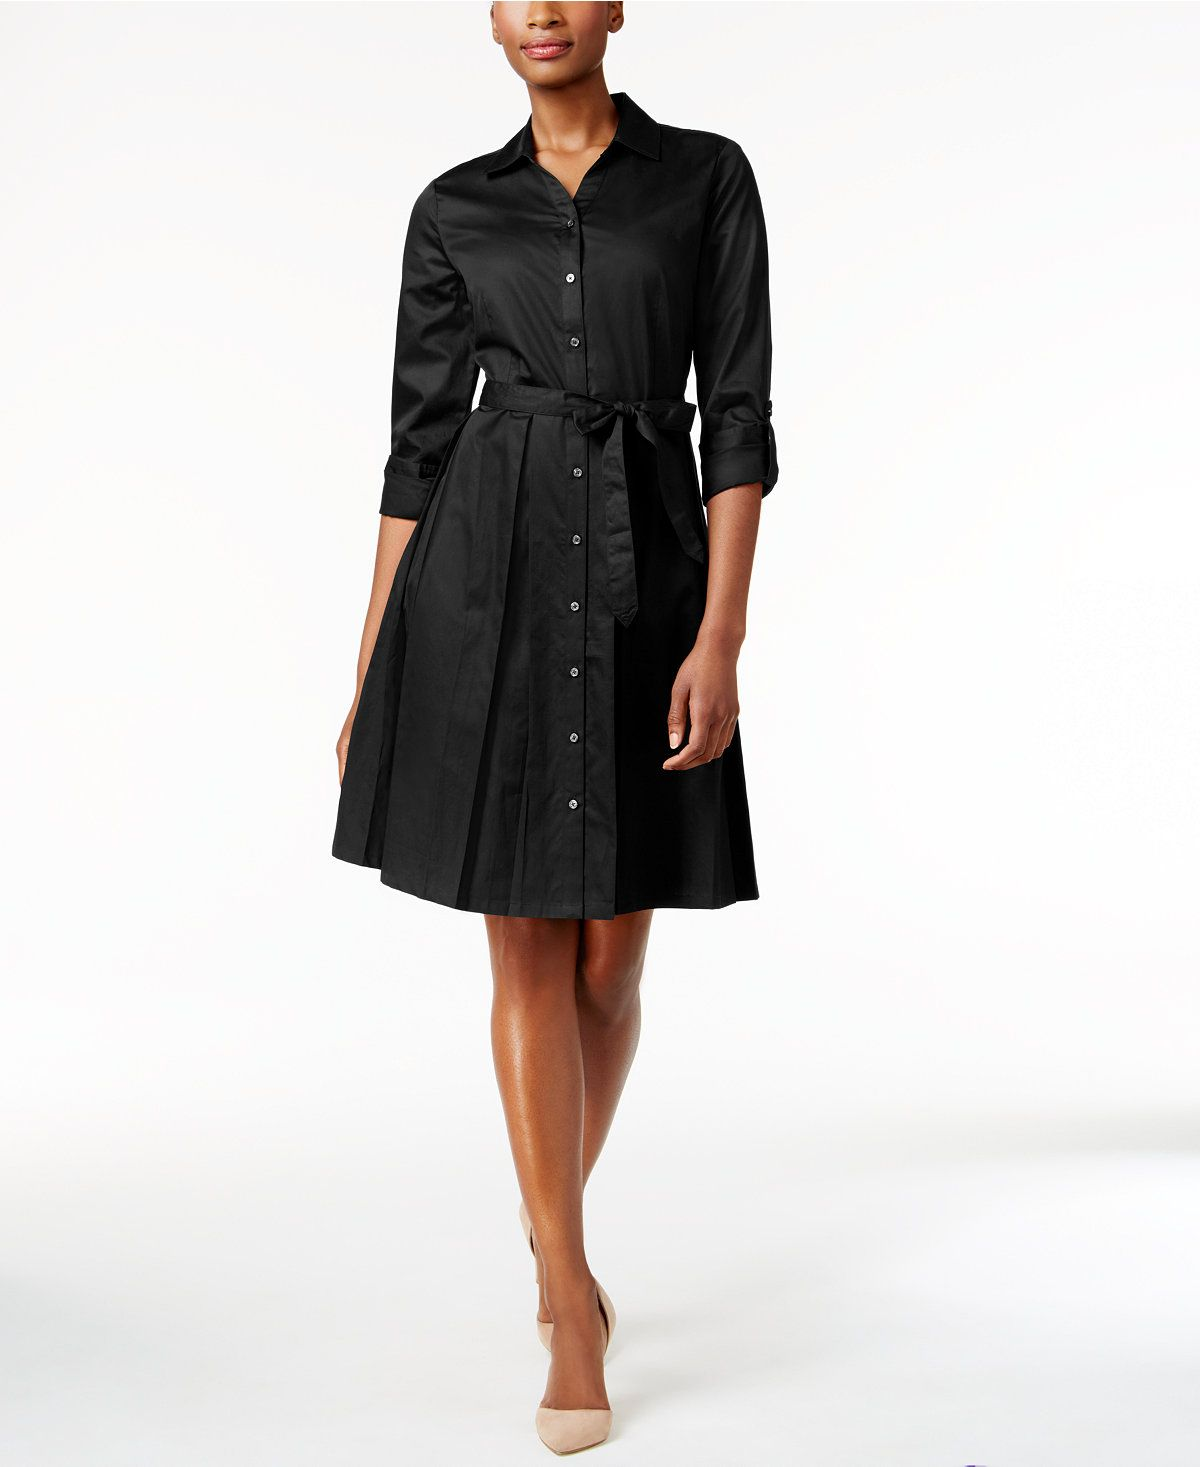 2bc61142321bc Charter Club Fit & Flare Shirt Dress, Only at Macy's - Charter Club - Women  - Macy's